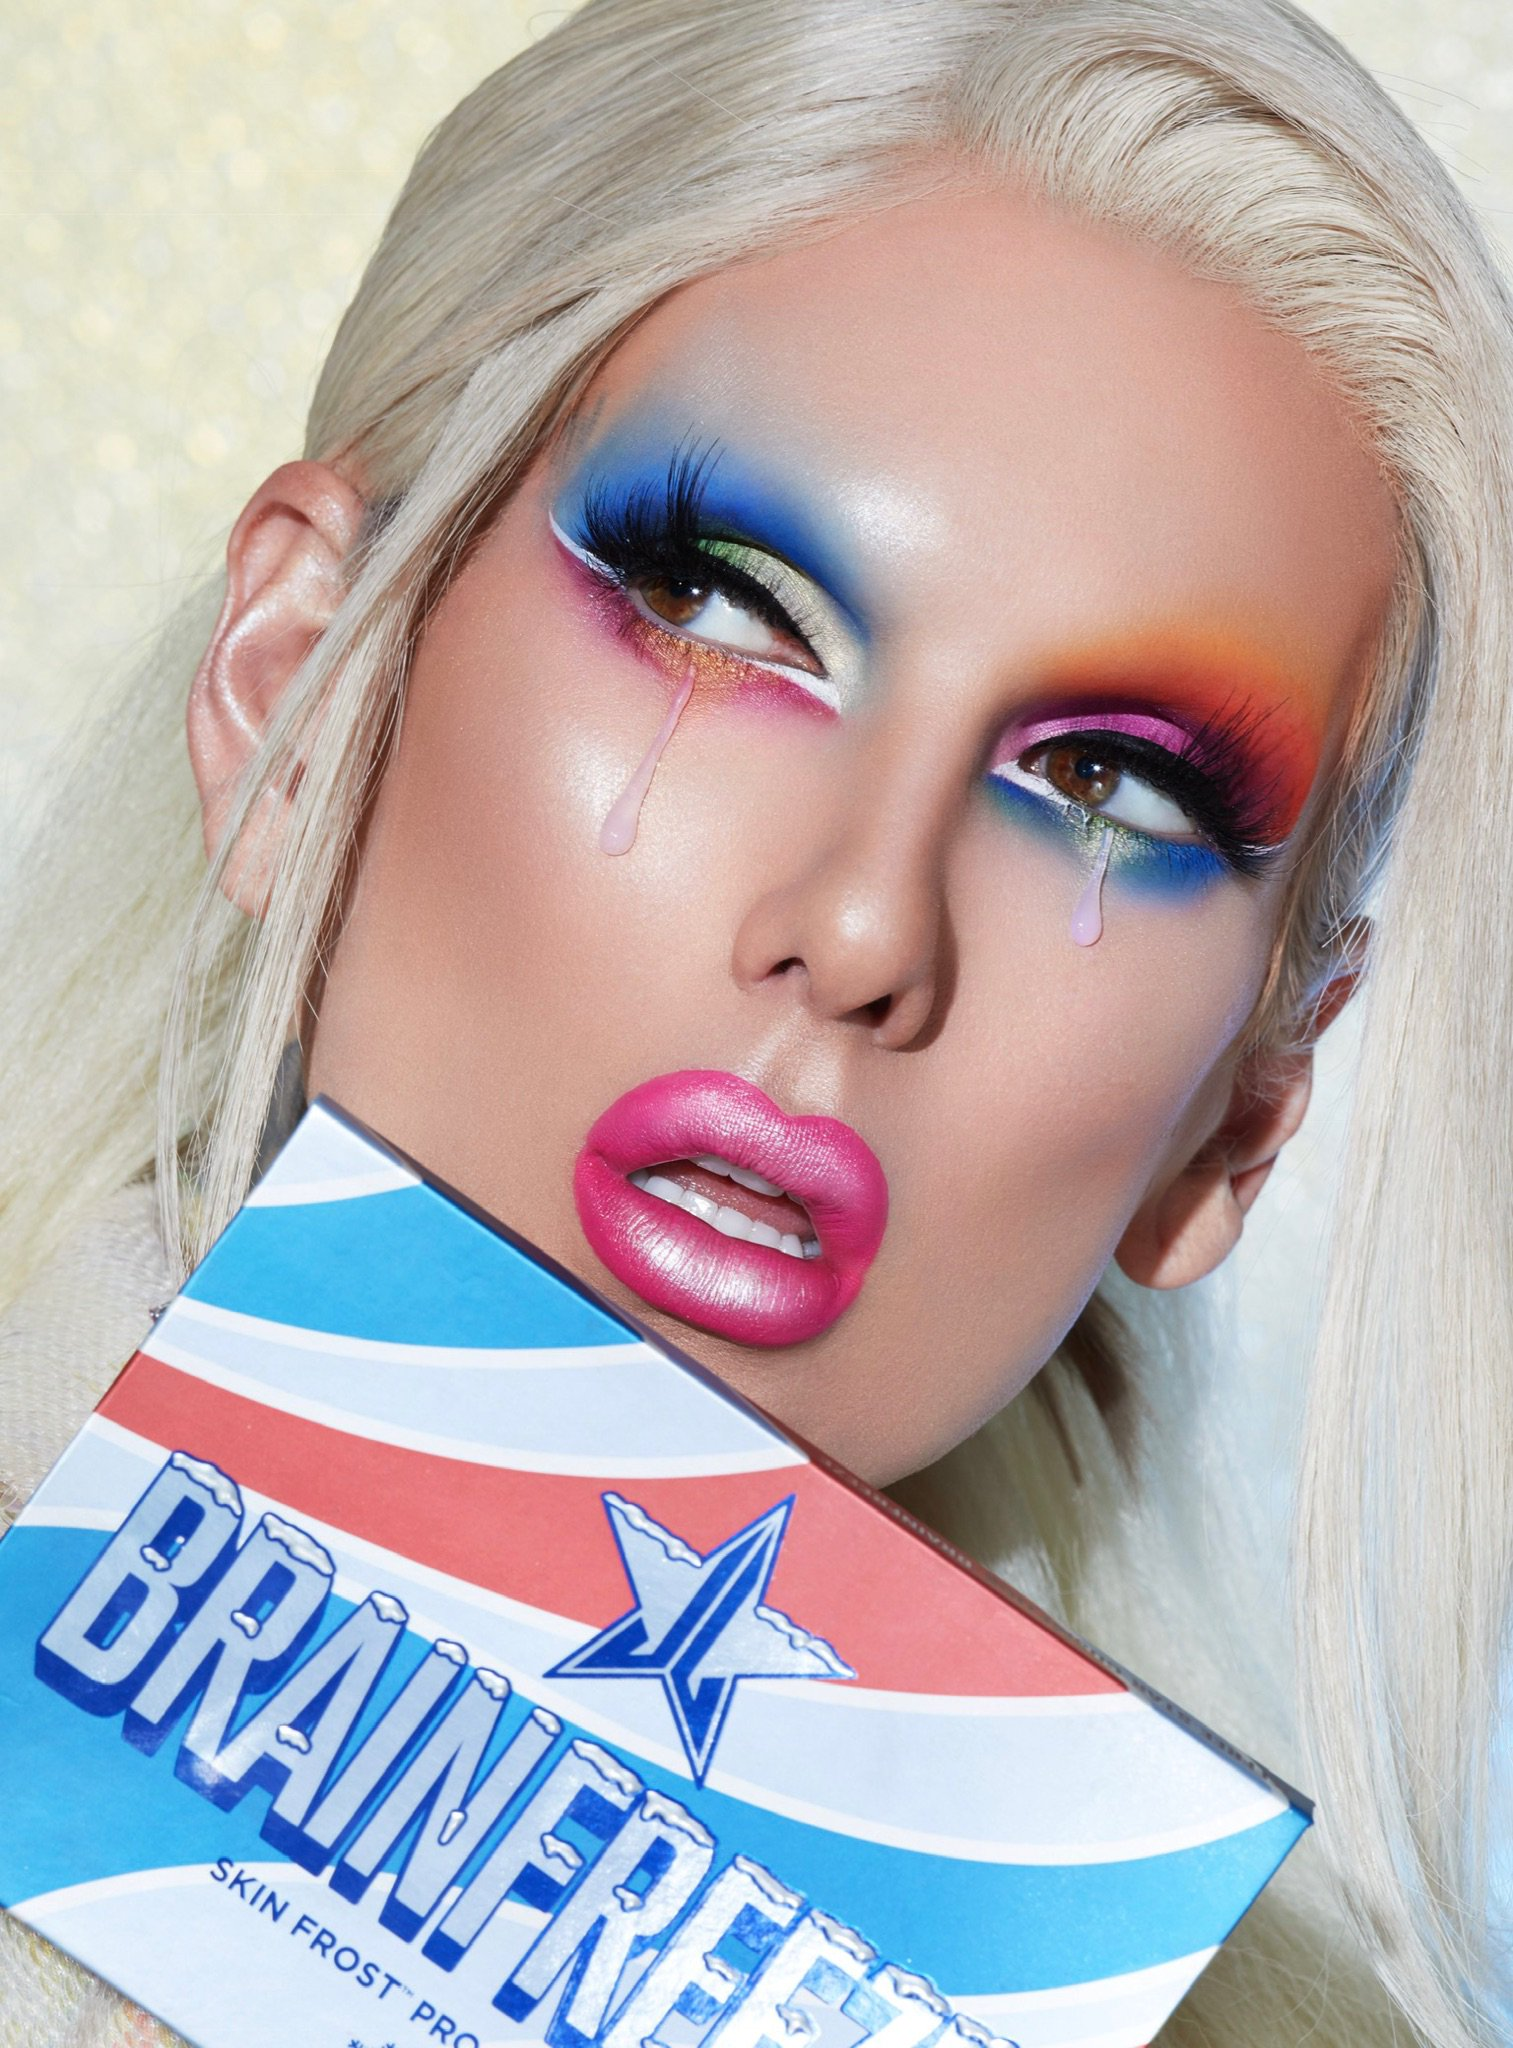 Image result for jeffree star skin frost shoot pictures